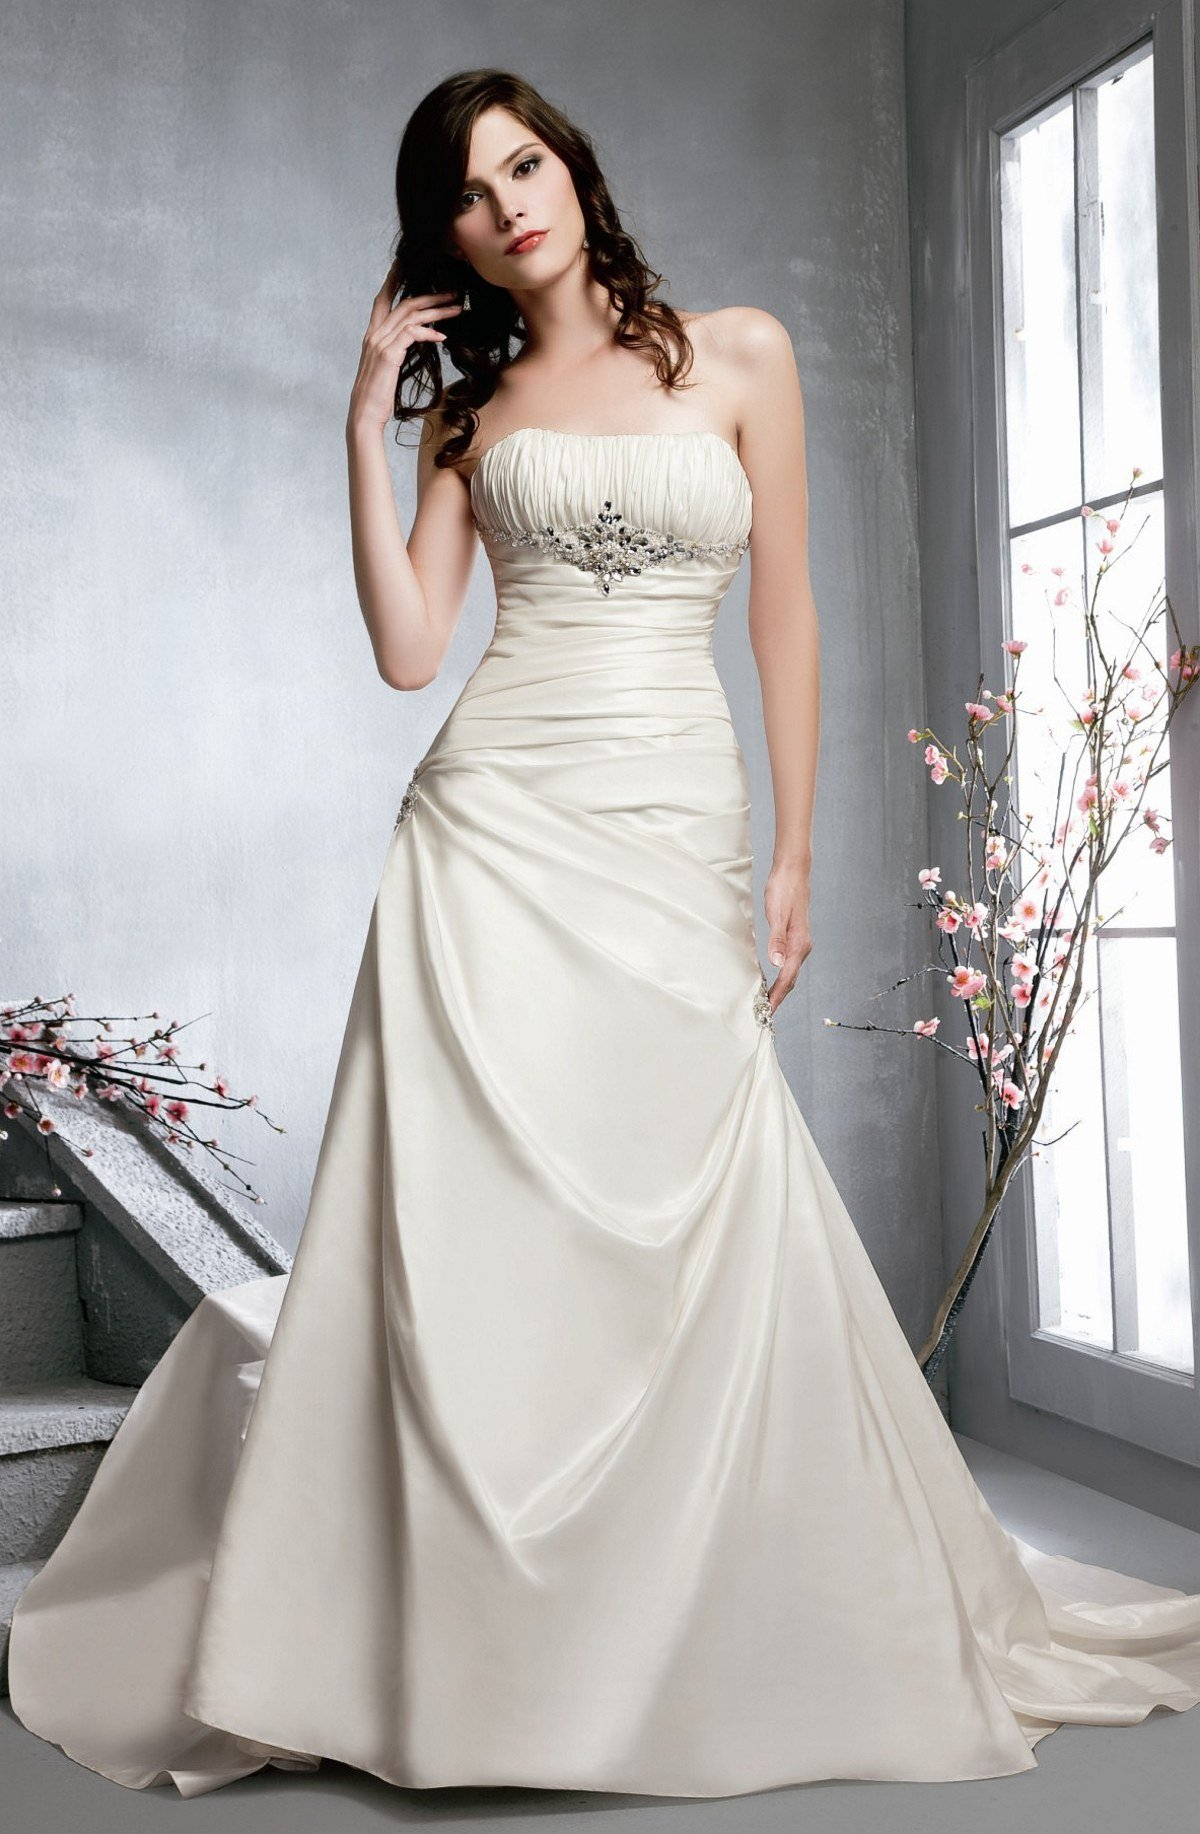 New Veromia Wedding Dresses – Just Arrived